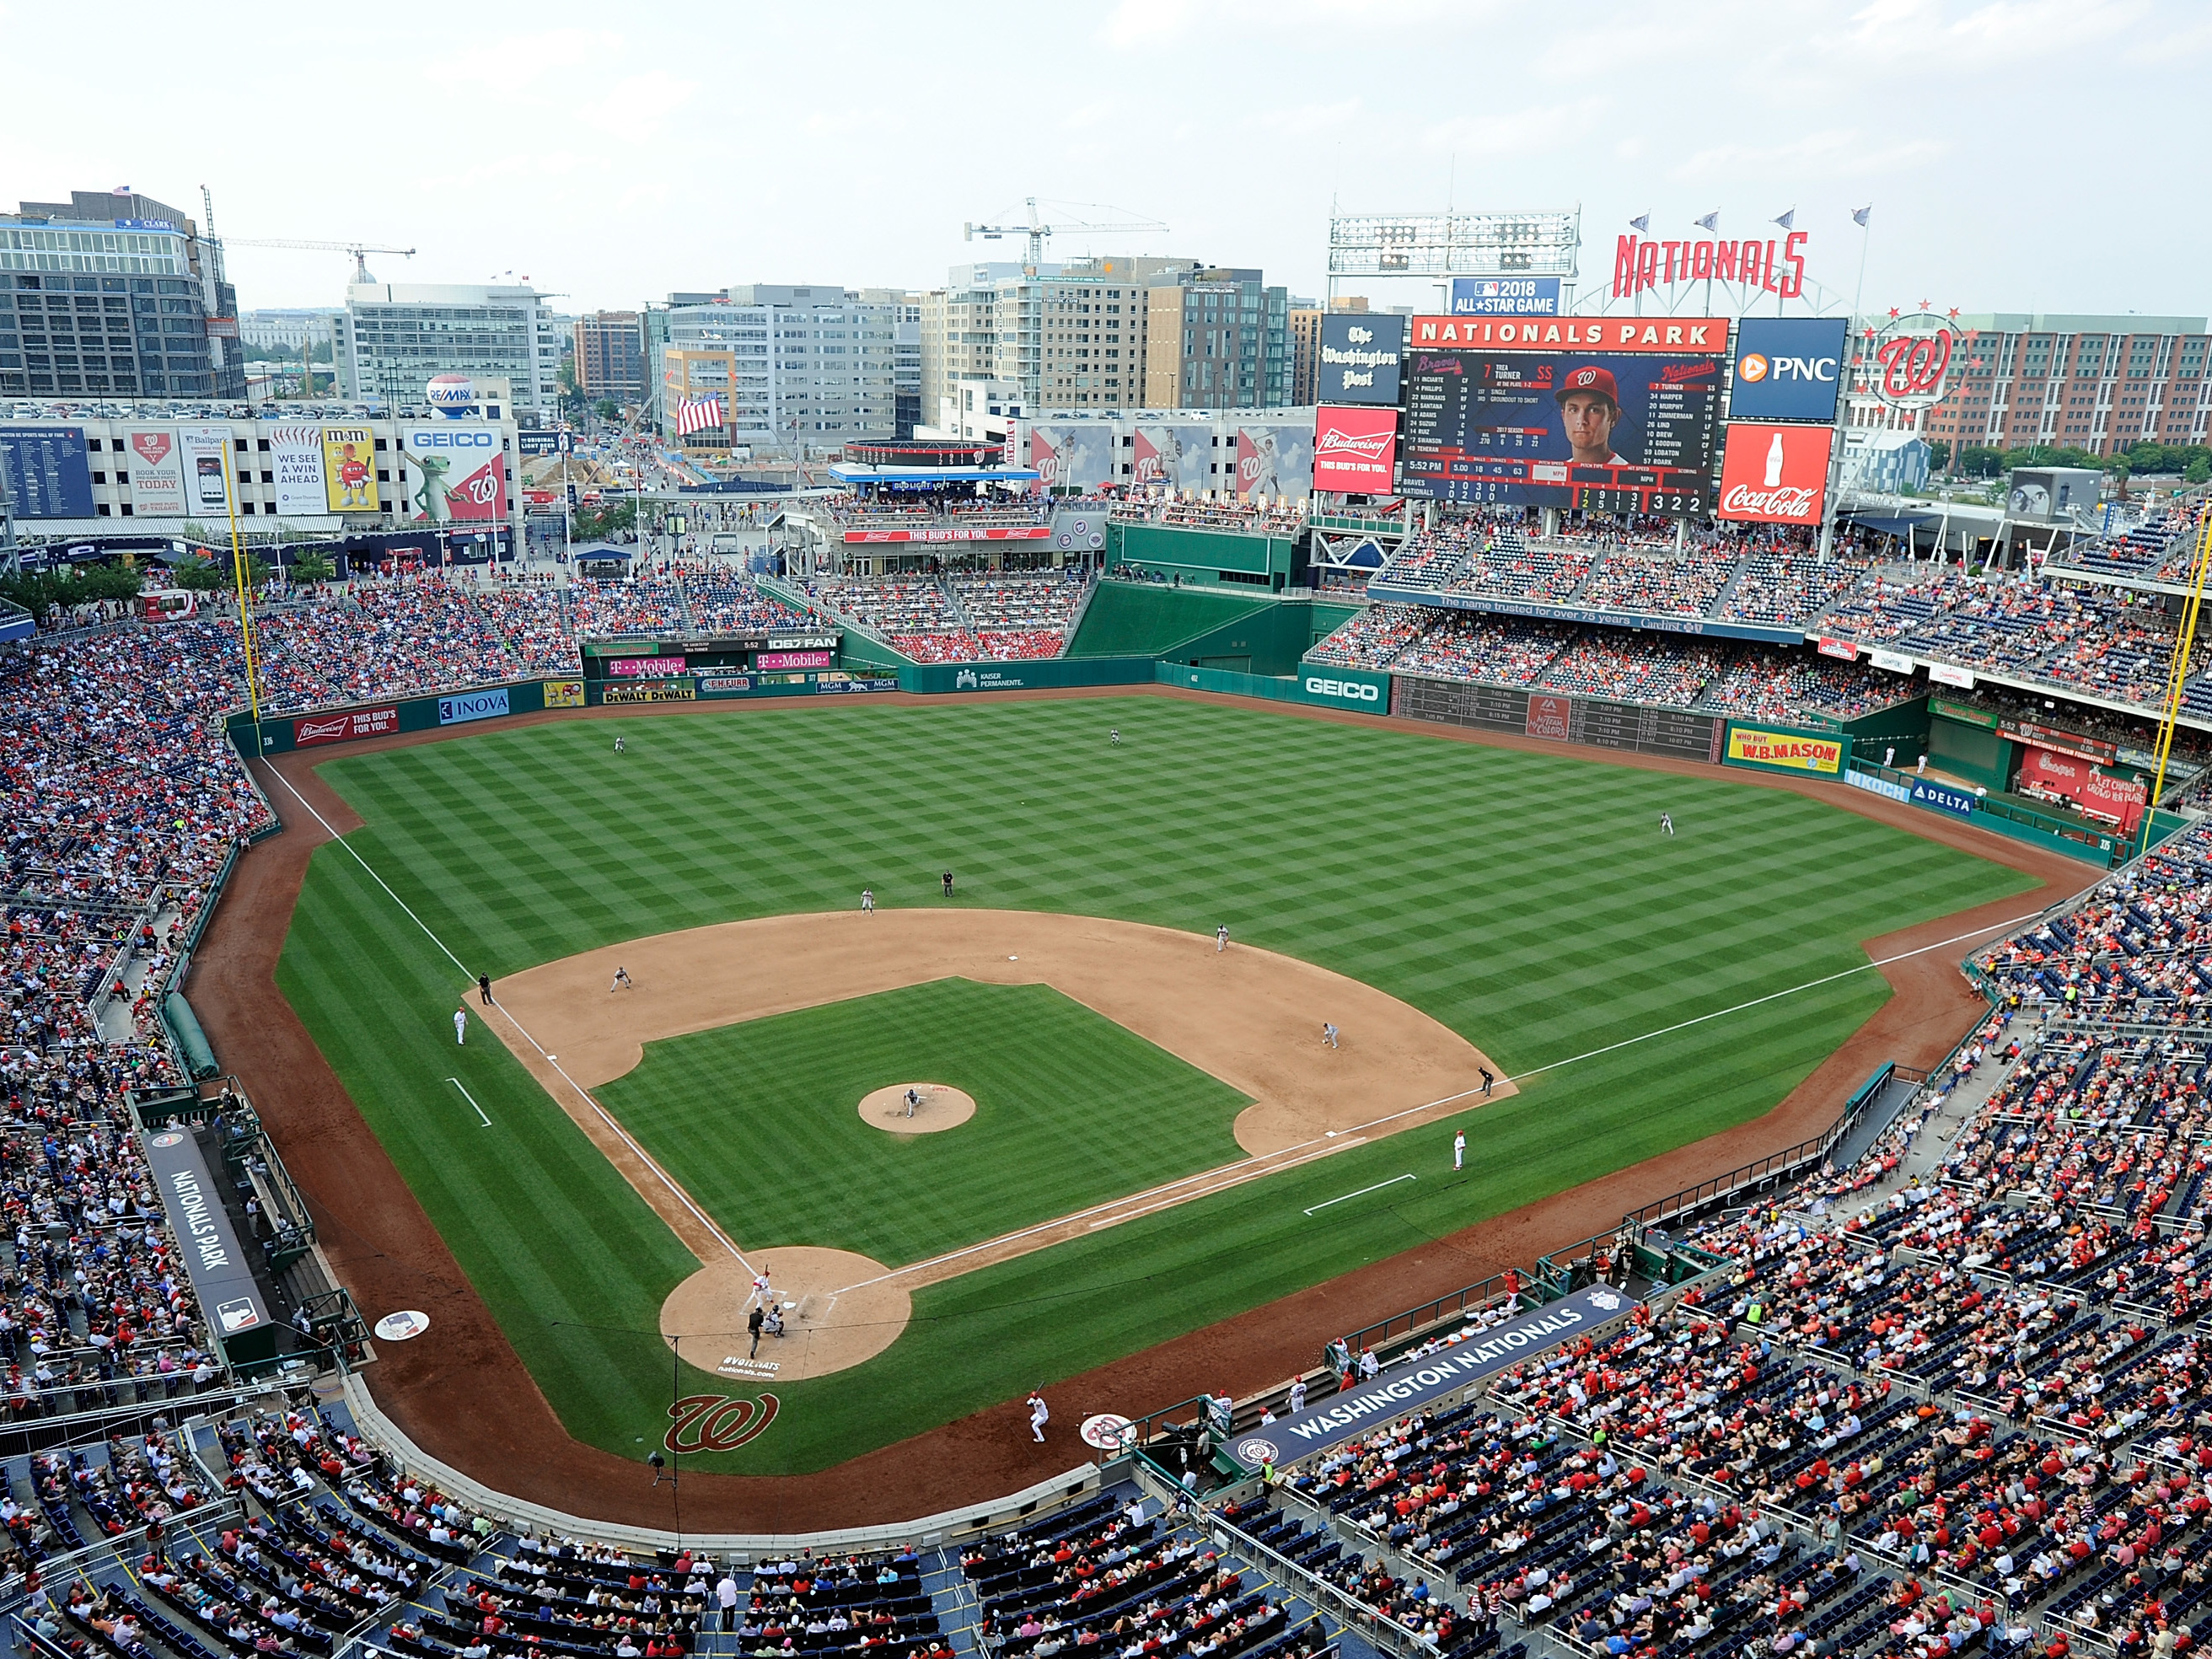 Congressional Baseball-related donations exceed $1 million